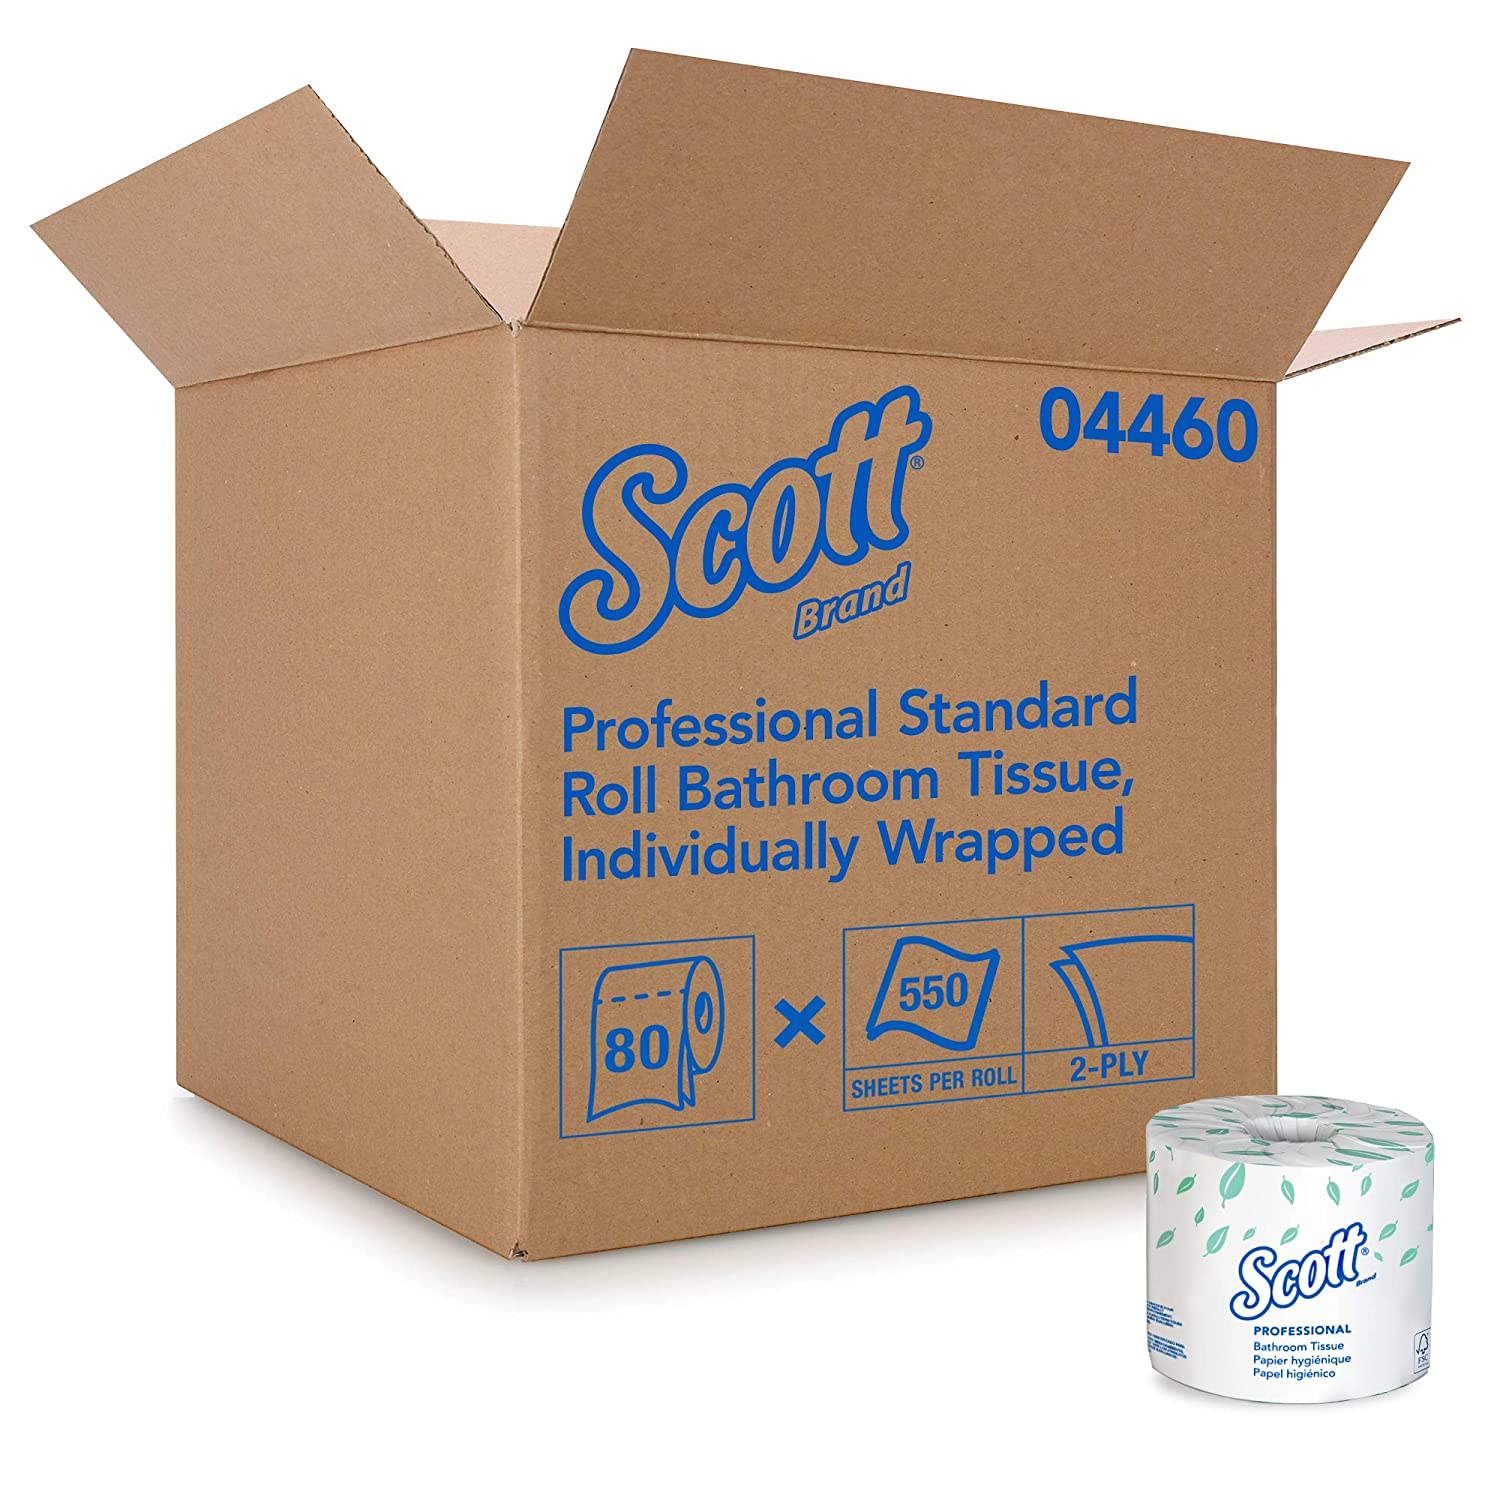 Scott Essential Professional Bulk Toilet Paper for Business (04460), Individually Wrapped Standard Rolls, 2-PLY, White, 80 Rolls / Case, 550 Sheets / Roll: Industrial & Scientific